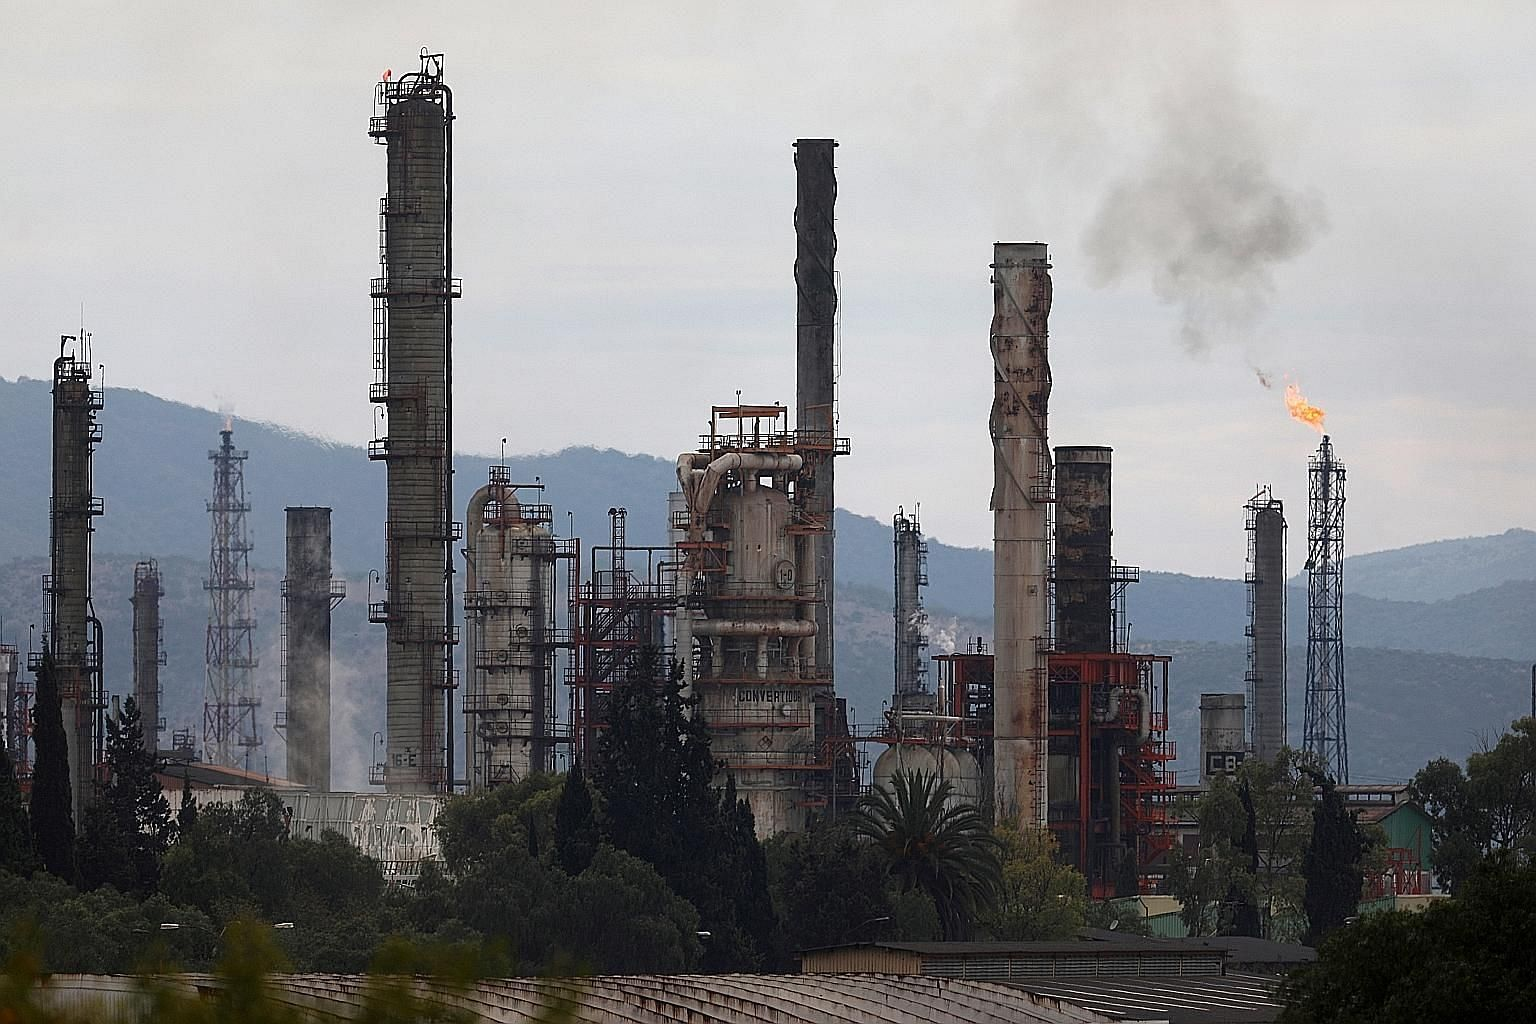 Excess natural gas being burned, or flared, from state-owned Pemex's Tula oil refinery in Tula de Allende, Mexico, on June 22. Rather than making greater effort to mitigate the demand for energy through conservation and energy-efficiency drives, or p